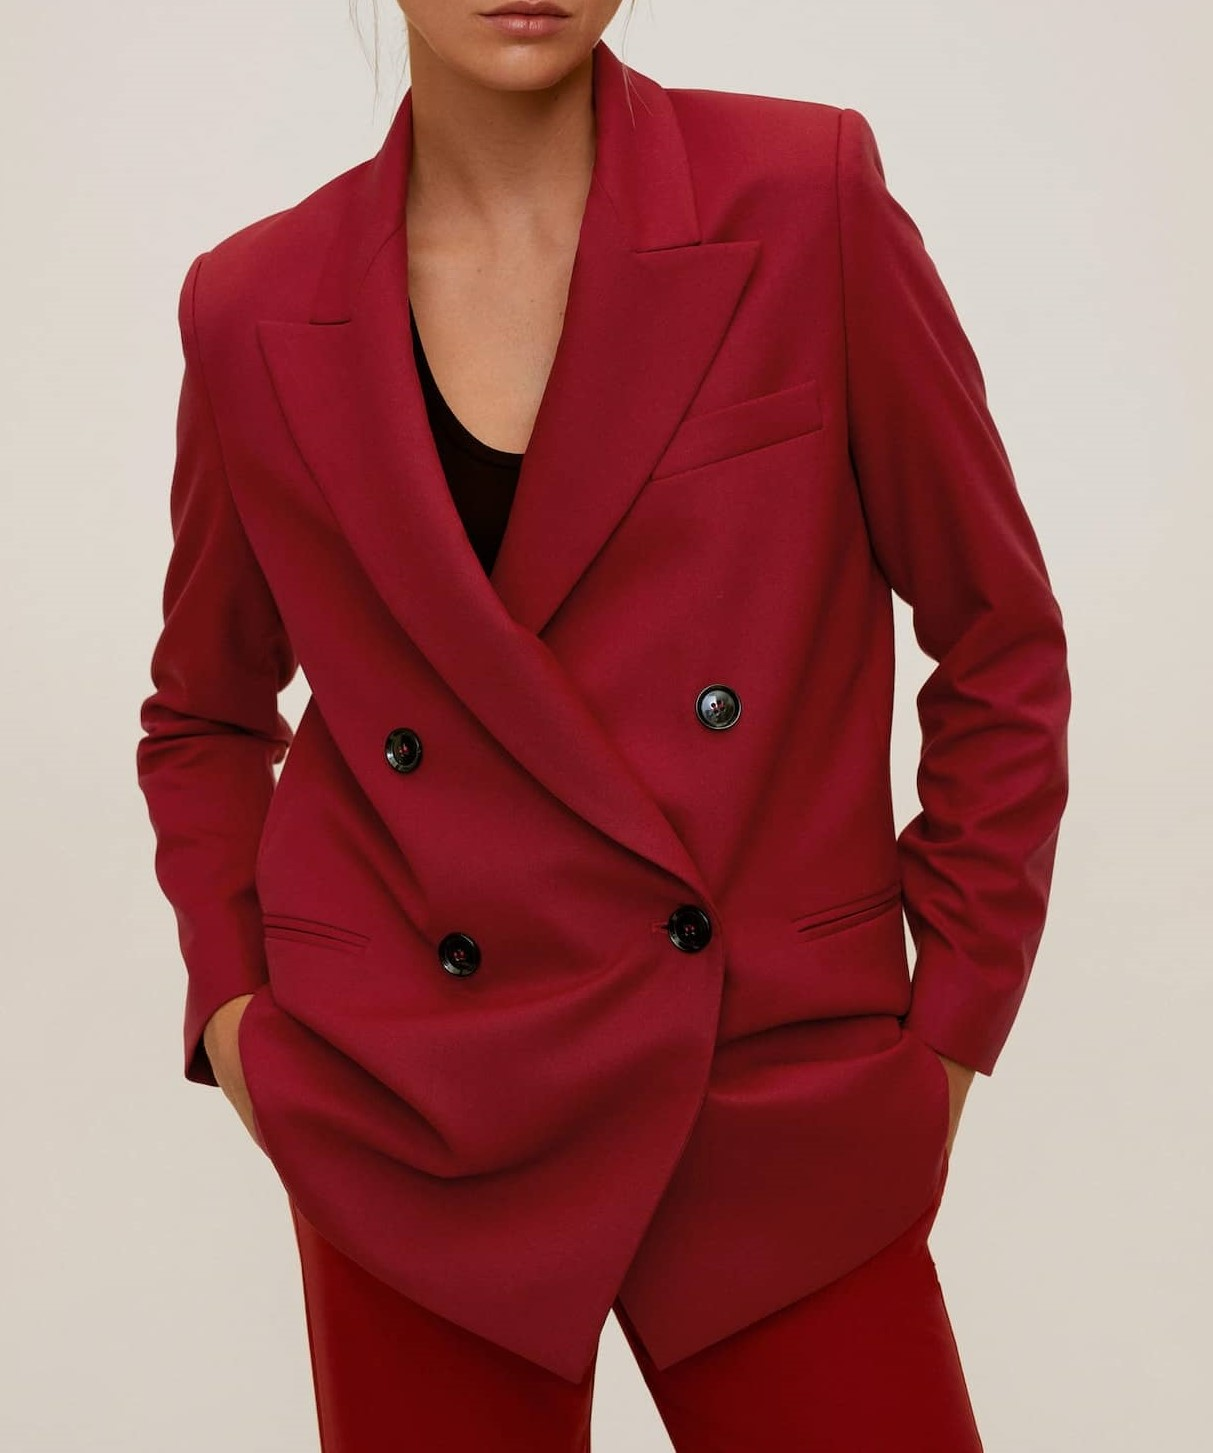 double-breasted structured blazer